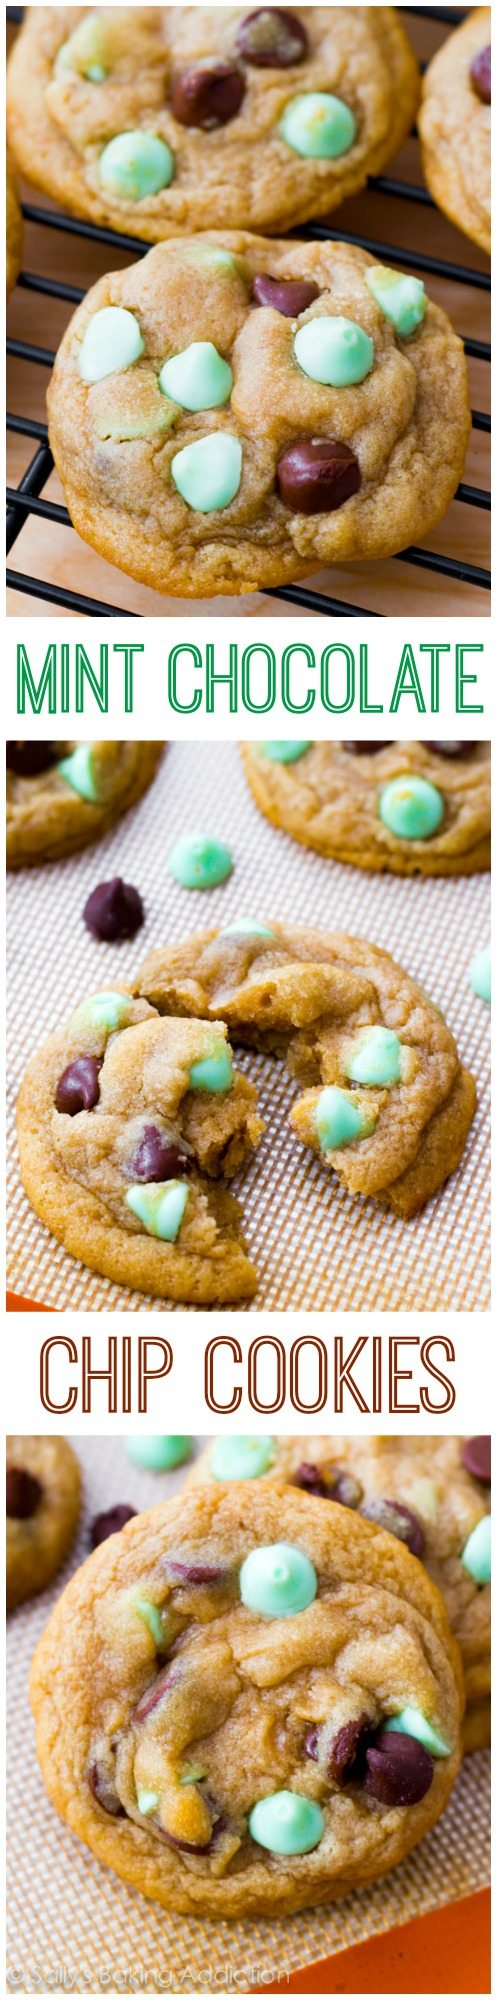 Mint Chocolate Chip Cookies - soft-baked style! These disappear whenever I bake them. Double the batch!